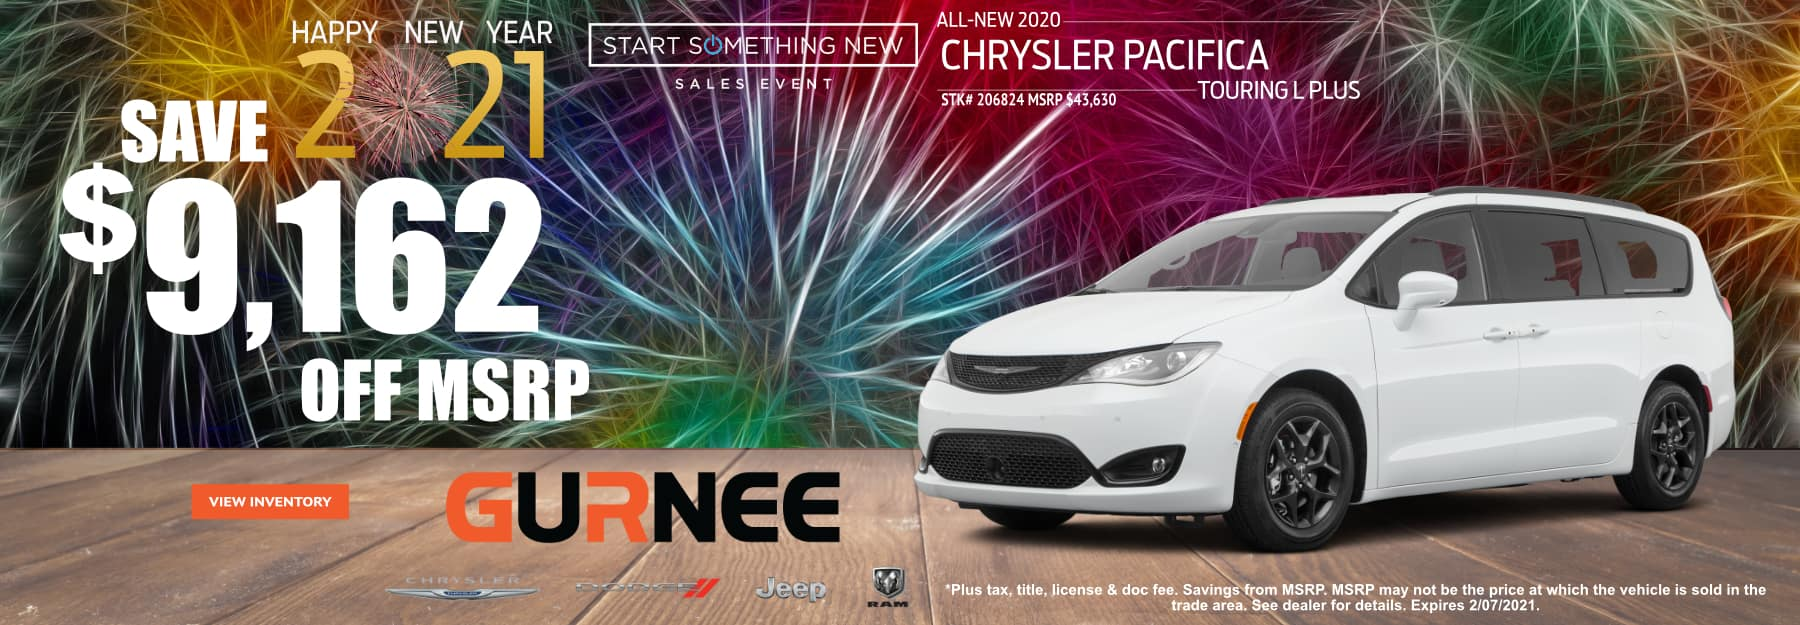 January-2021 CHRYSLER_PACIFICA_GURNEE